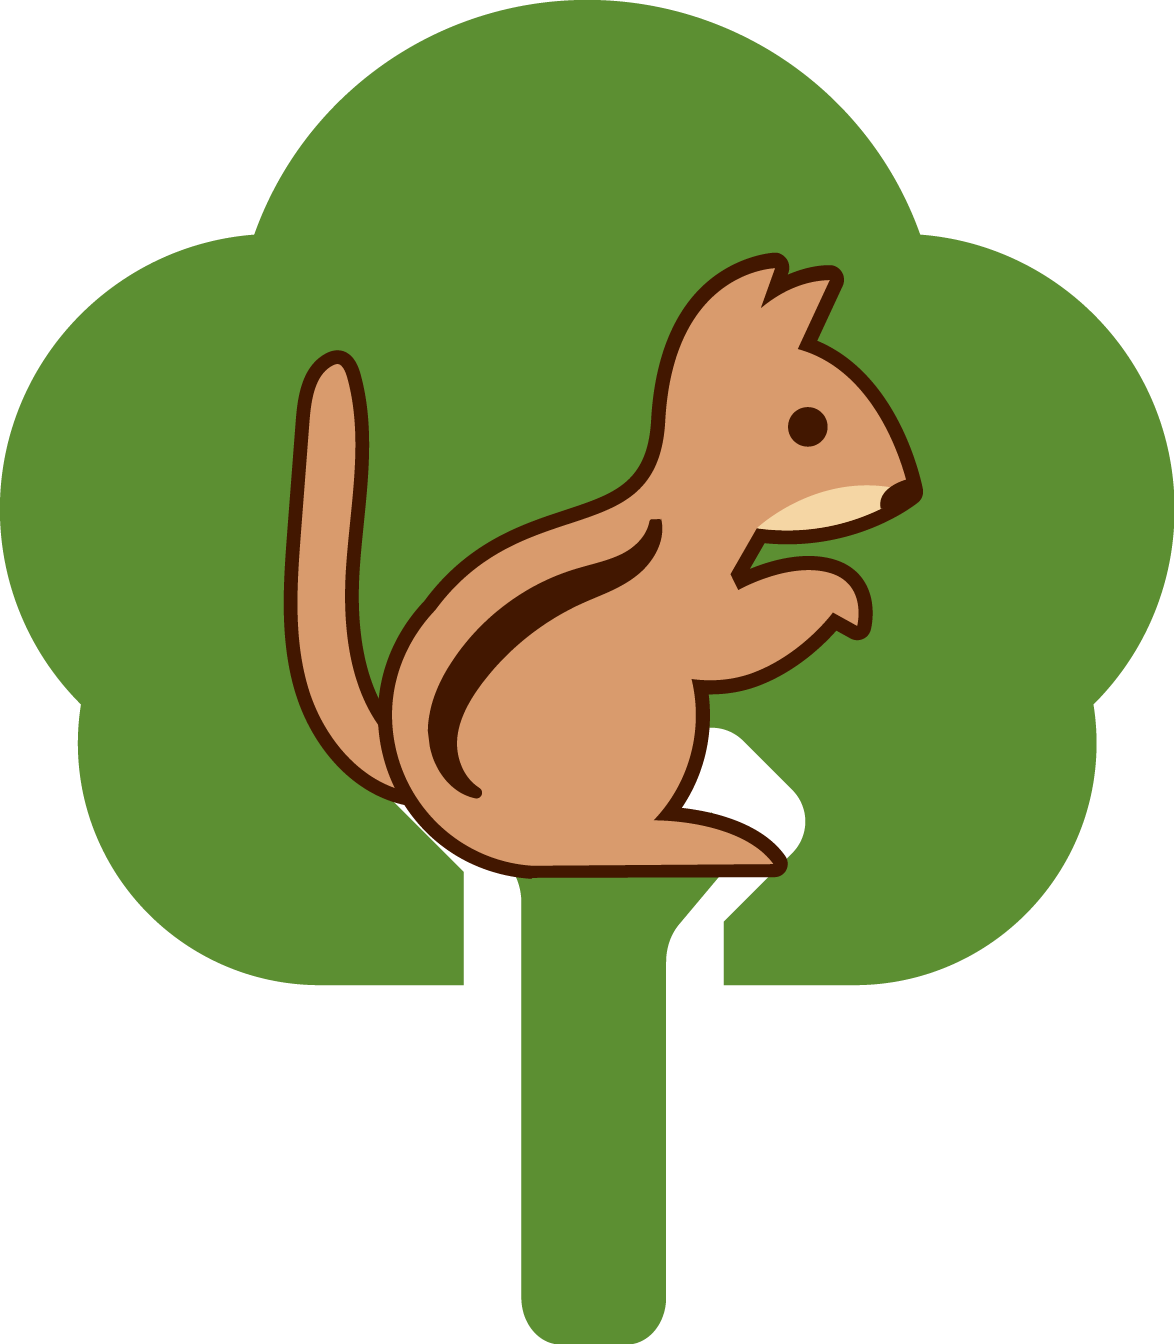 Clipart squirrel woodland. In the zone gardens